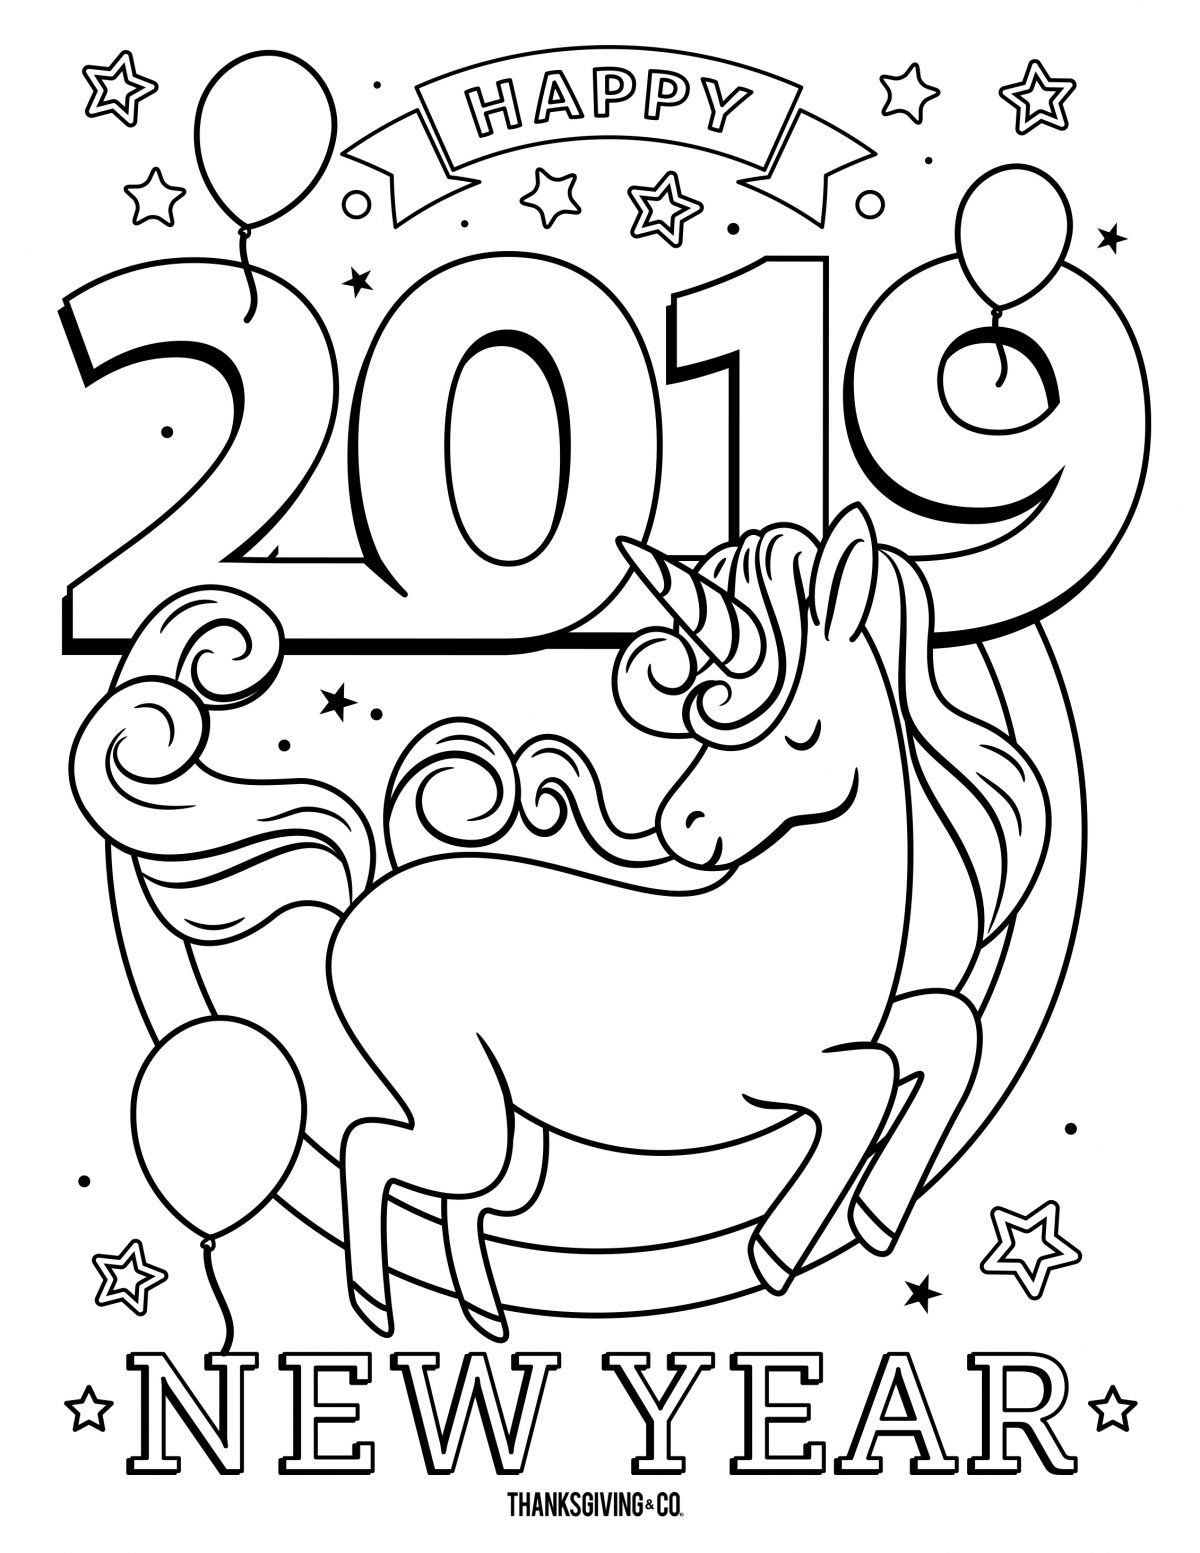 NewYear Coloring 4